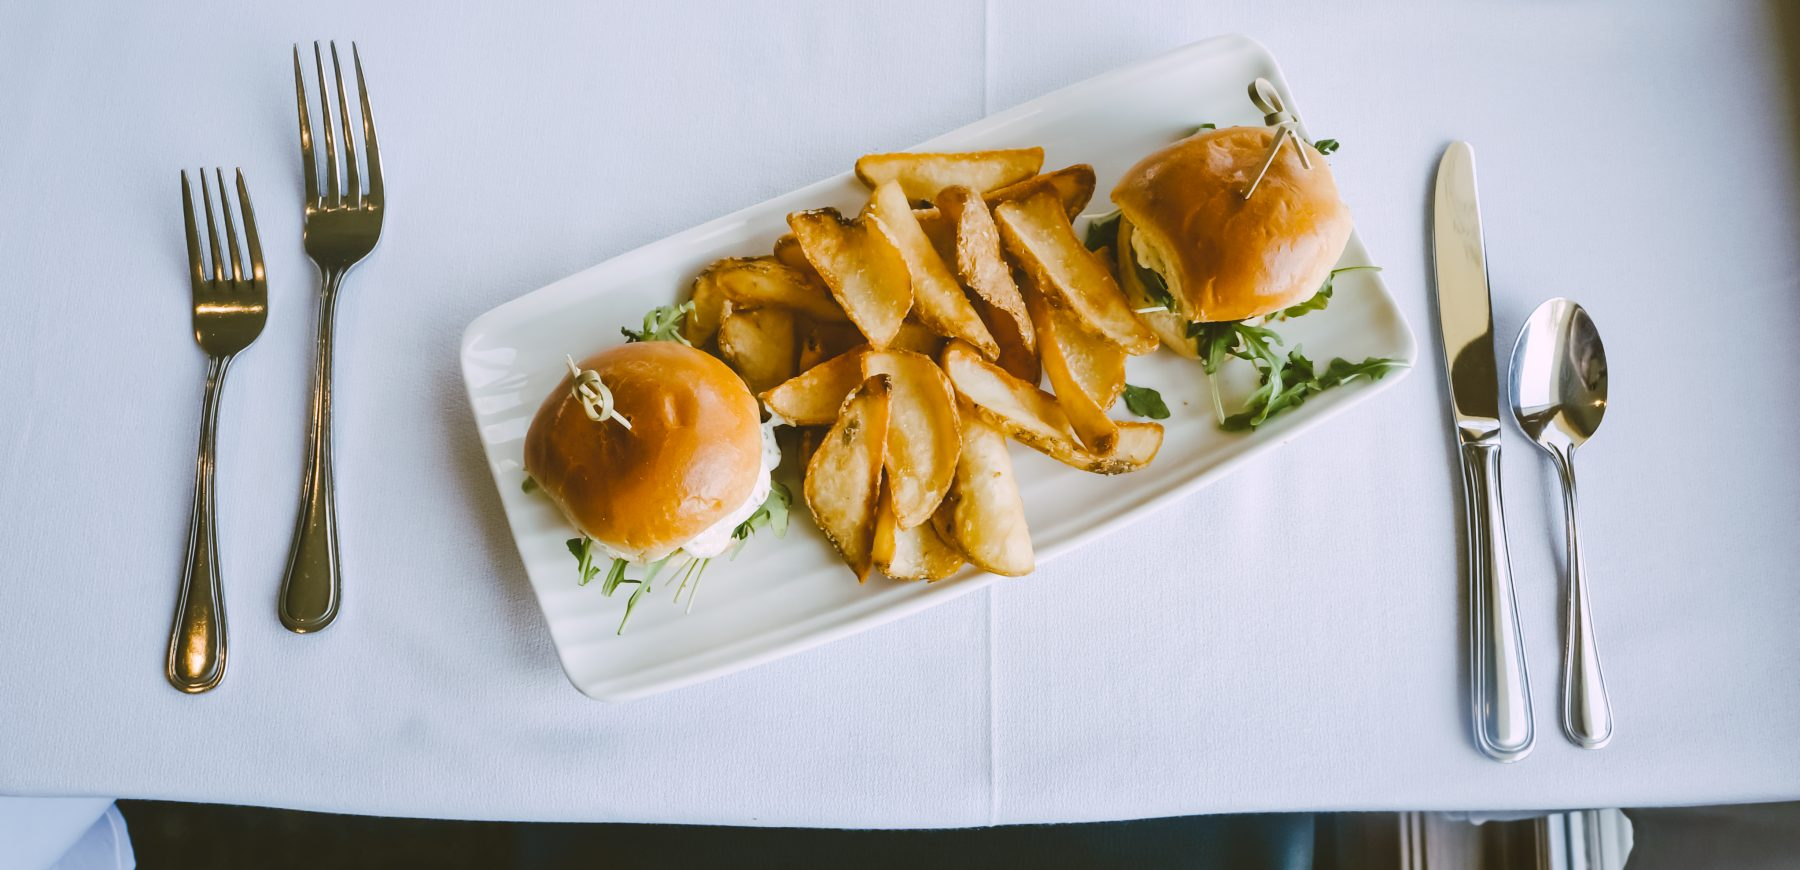 plate of two shrimp sliders and potato wedges